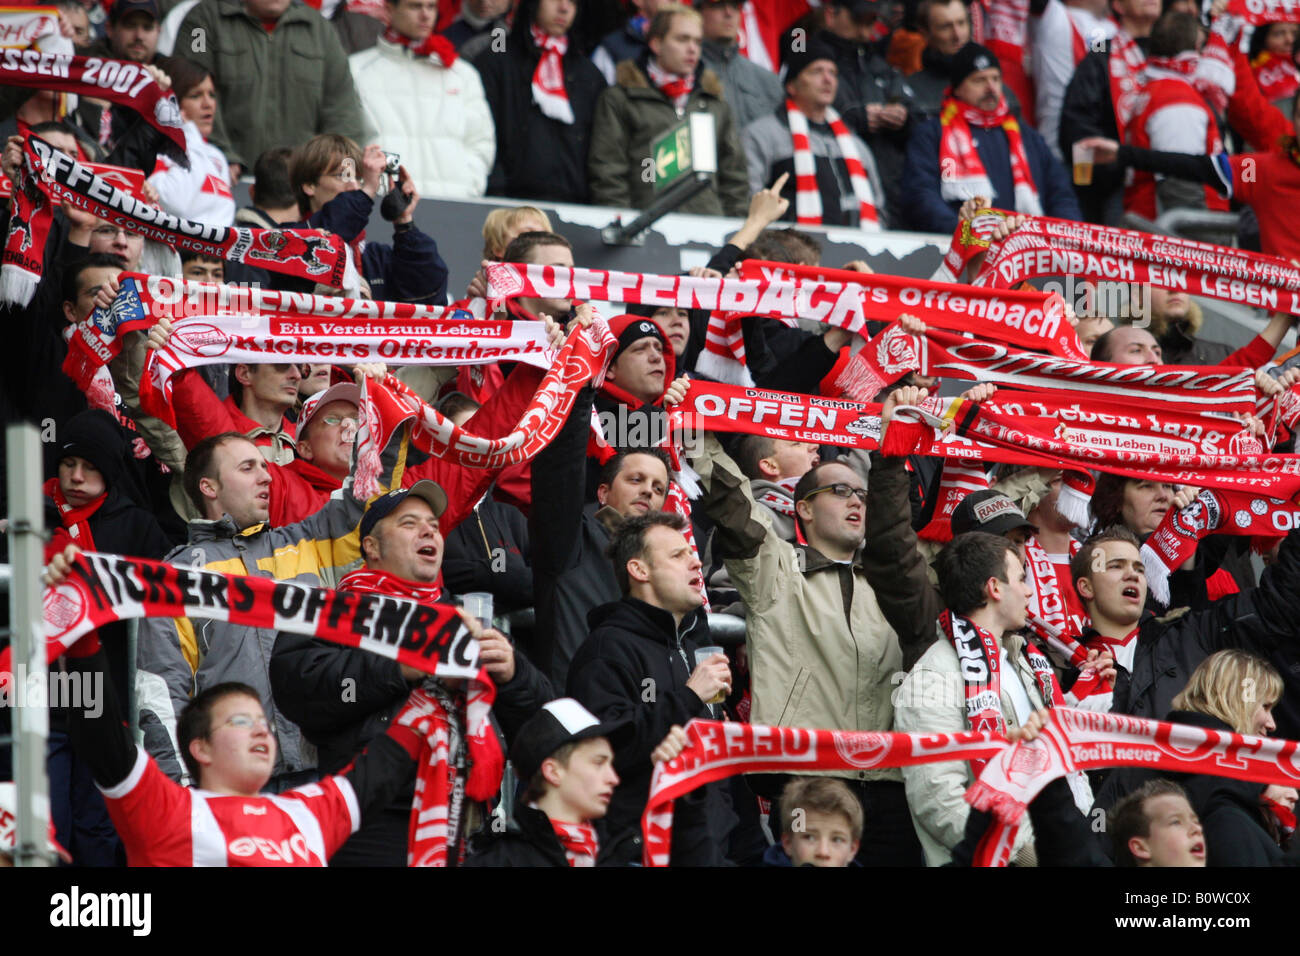 Soccer, 2. Bundesliga, second German football league, 1.FC Kaiserslautern, Kickers Offenbach, Offenbacher Kickers - Stock Image